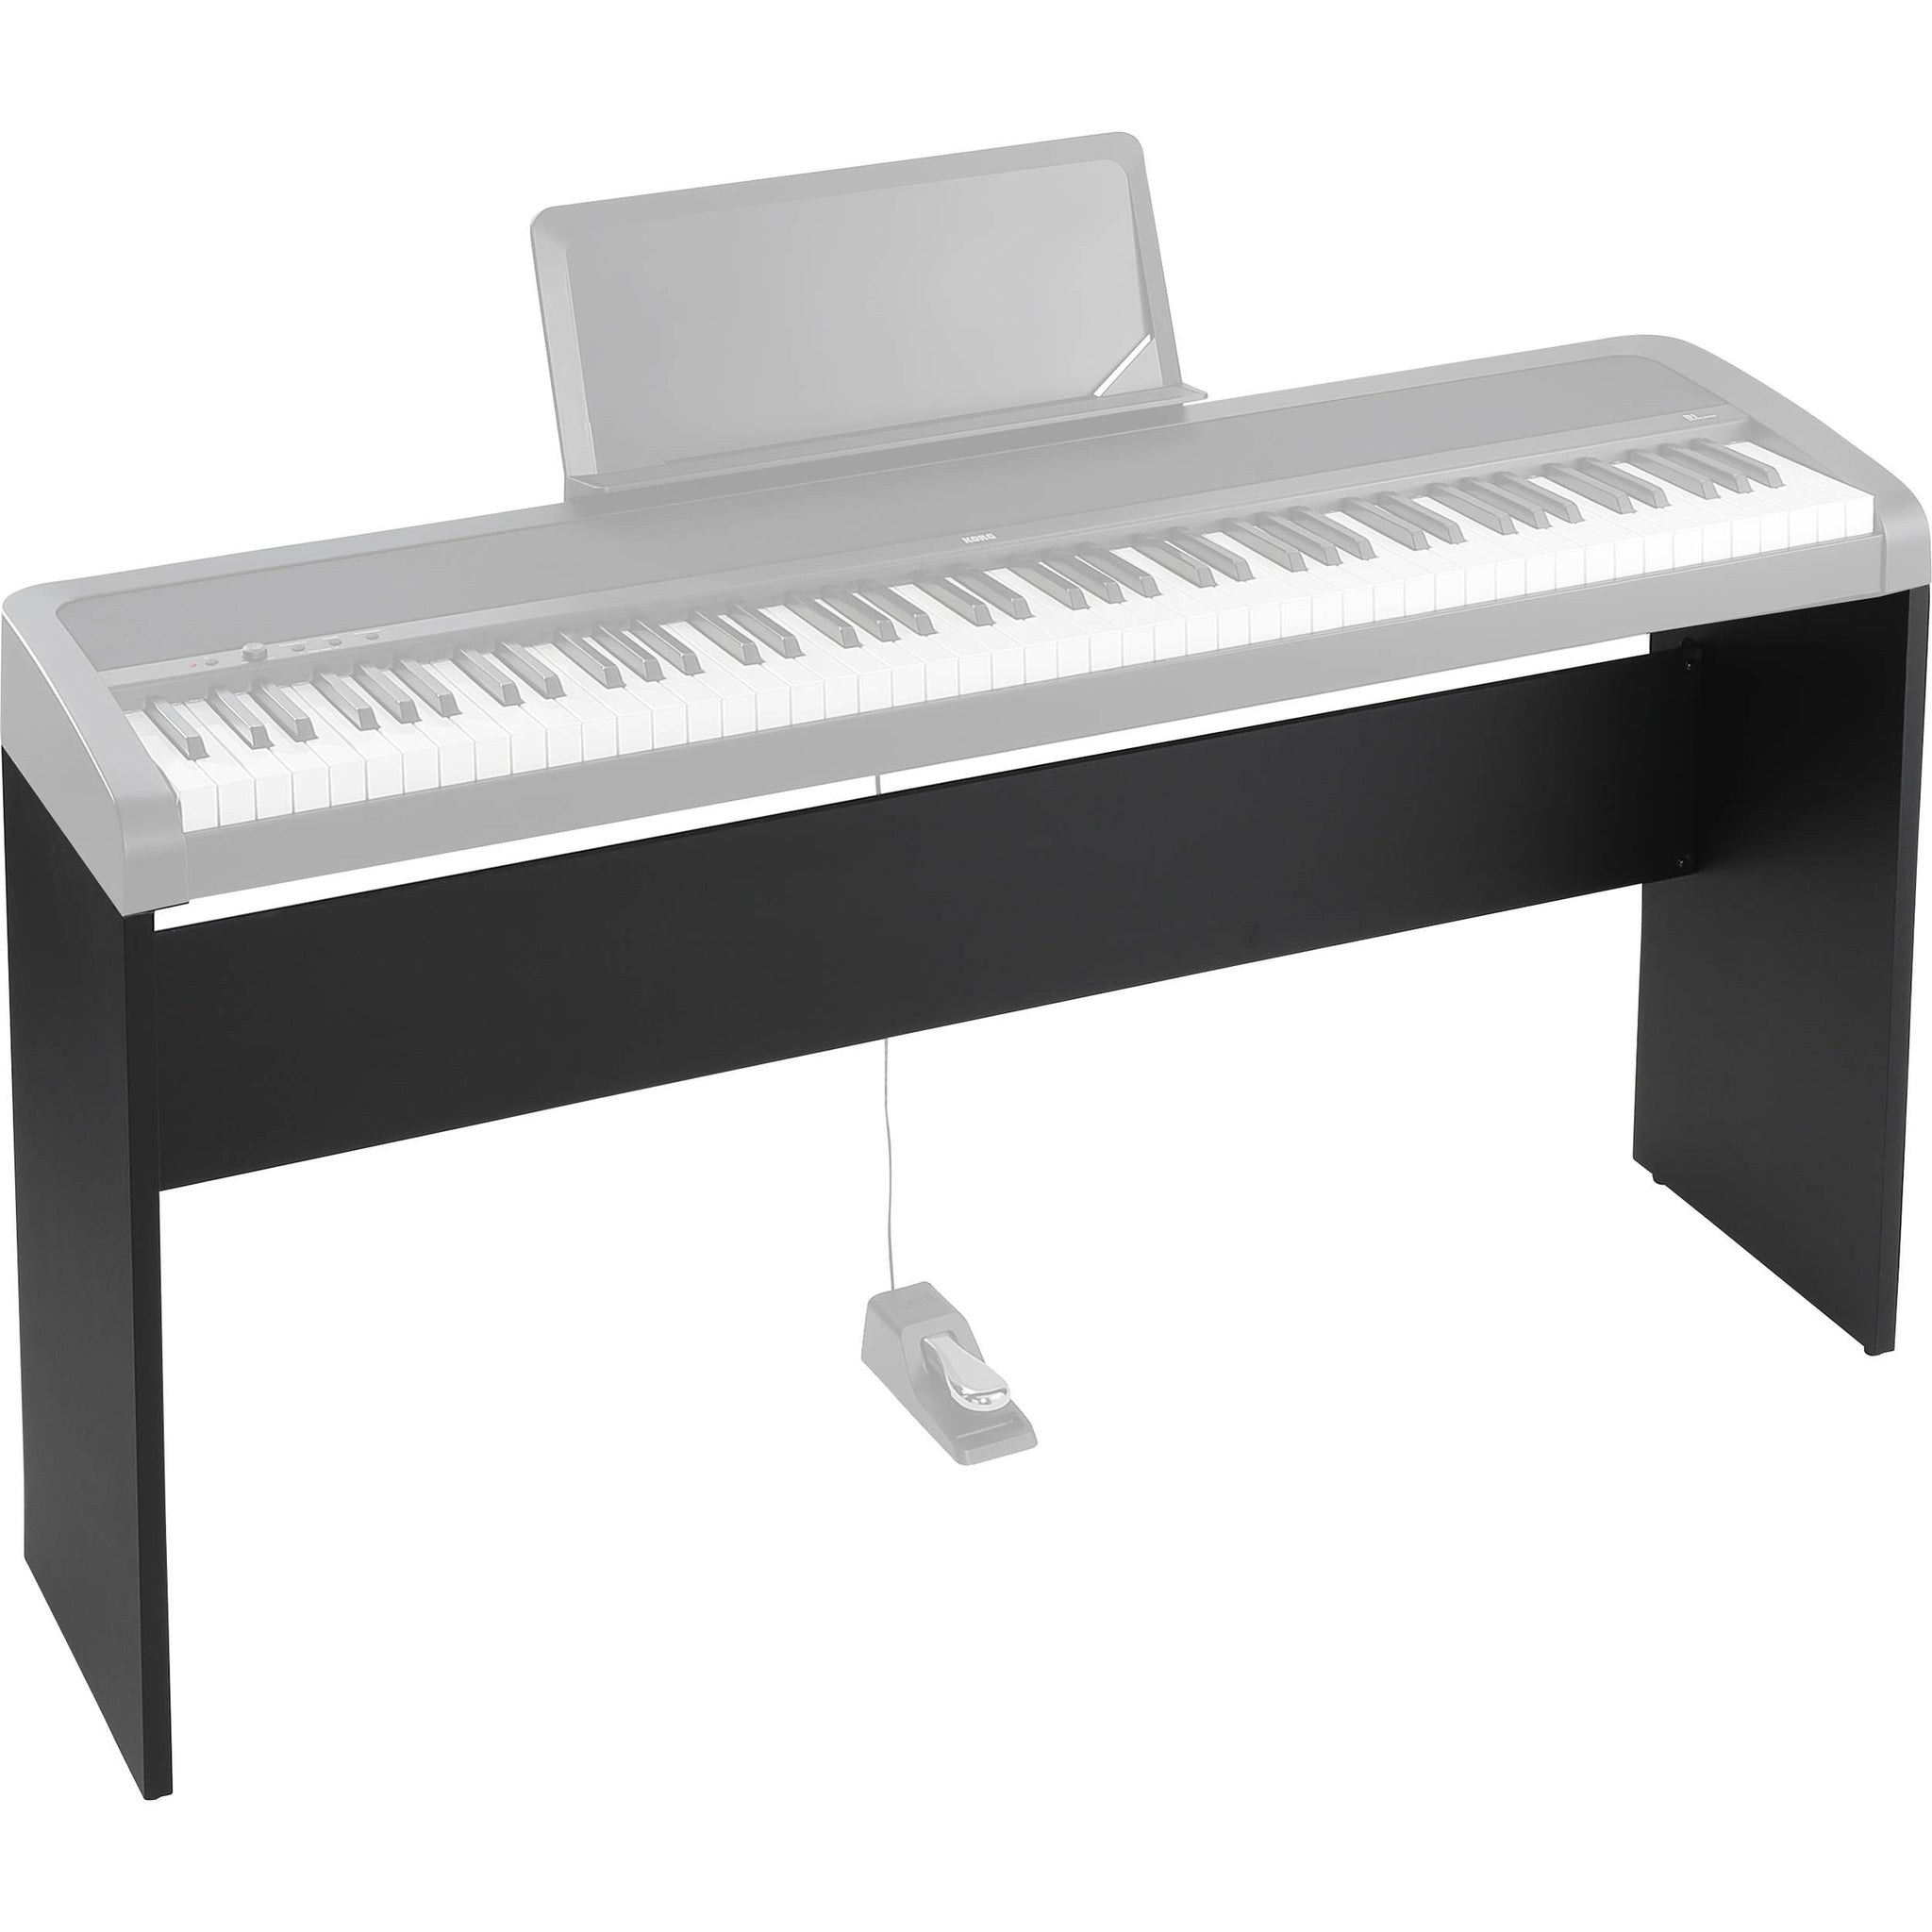 Korg STB2 Stand for B2 Digital Piano